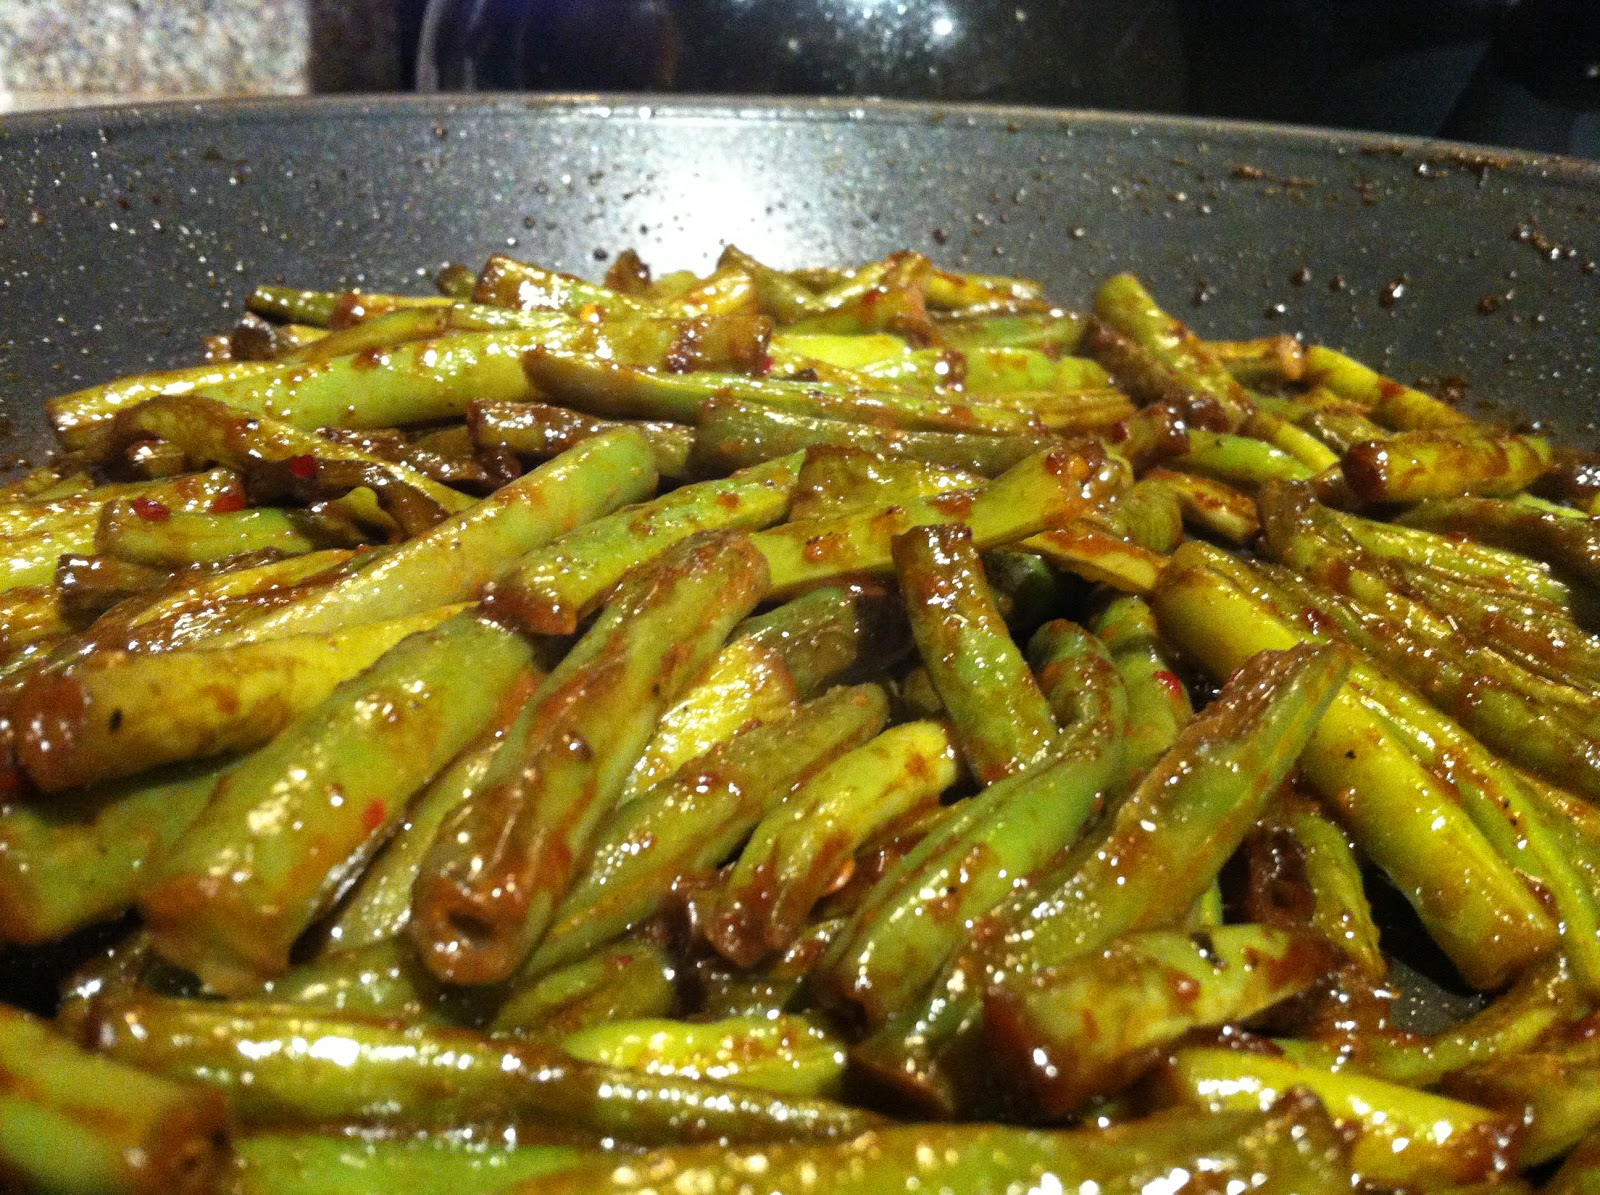 The Lotus Bar: Faux Wok-Style Chinese Green Beans